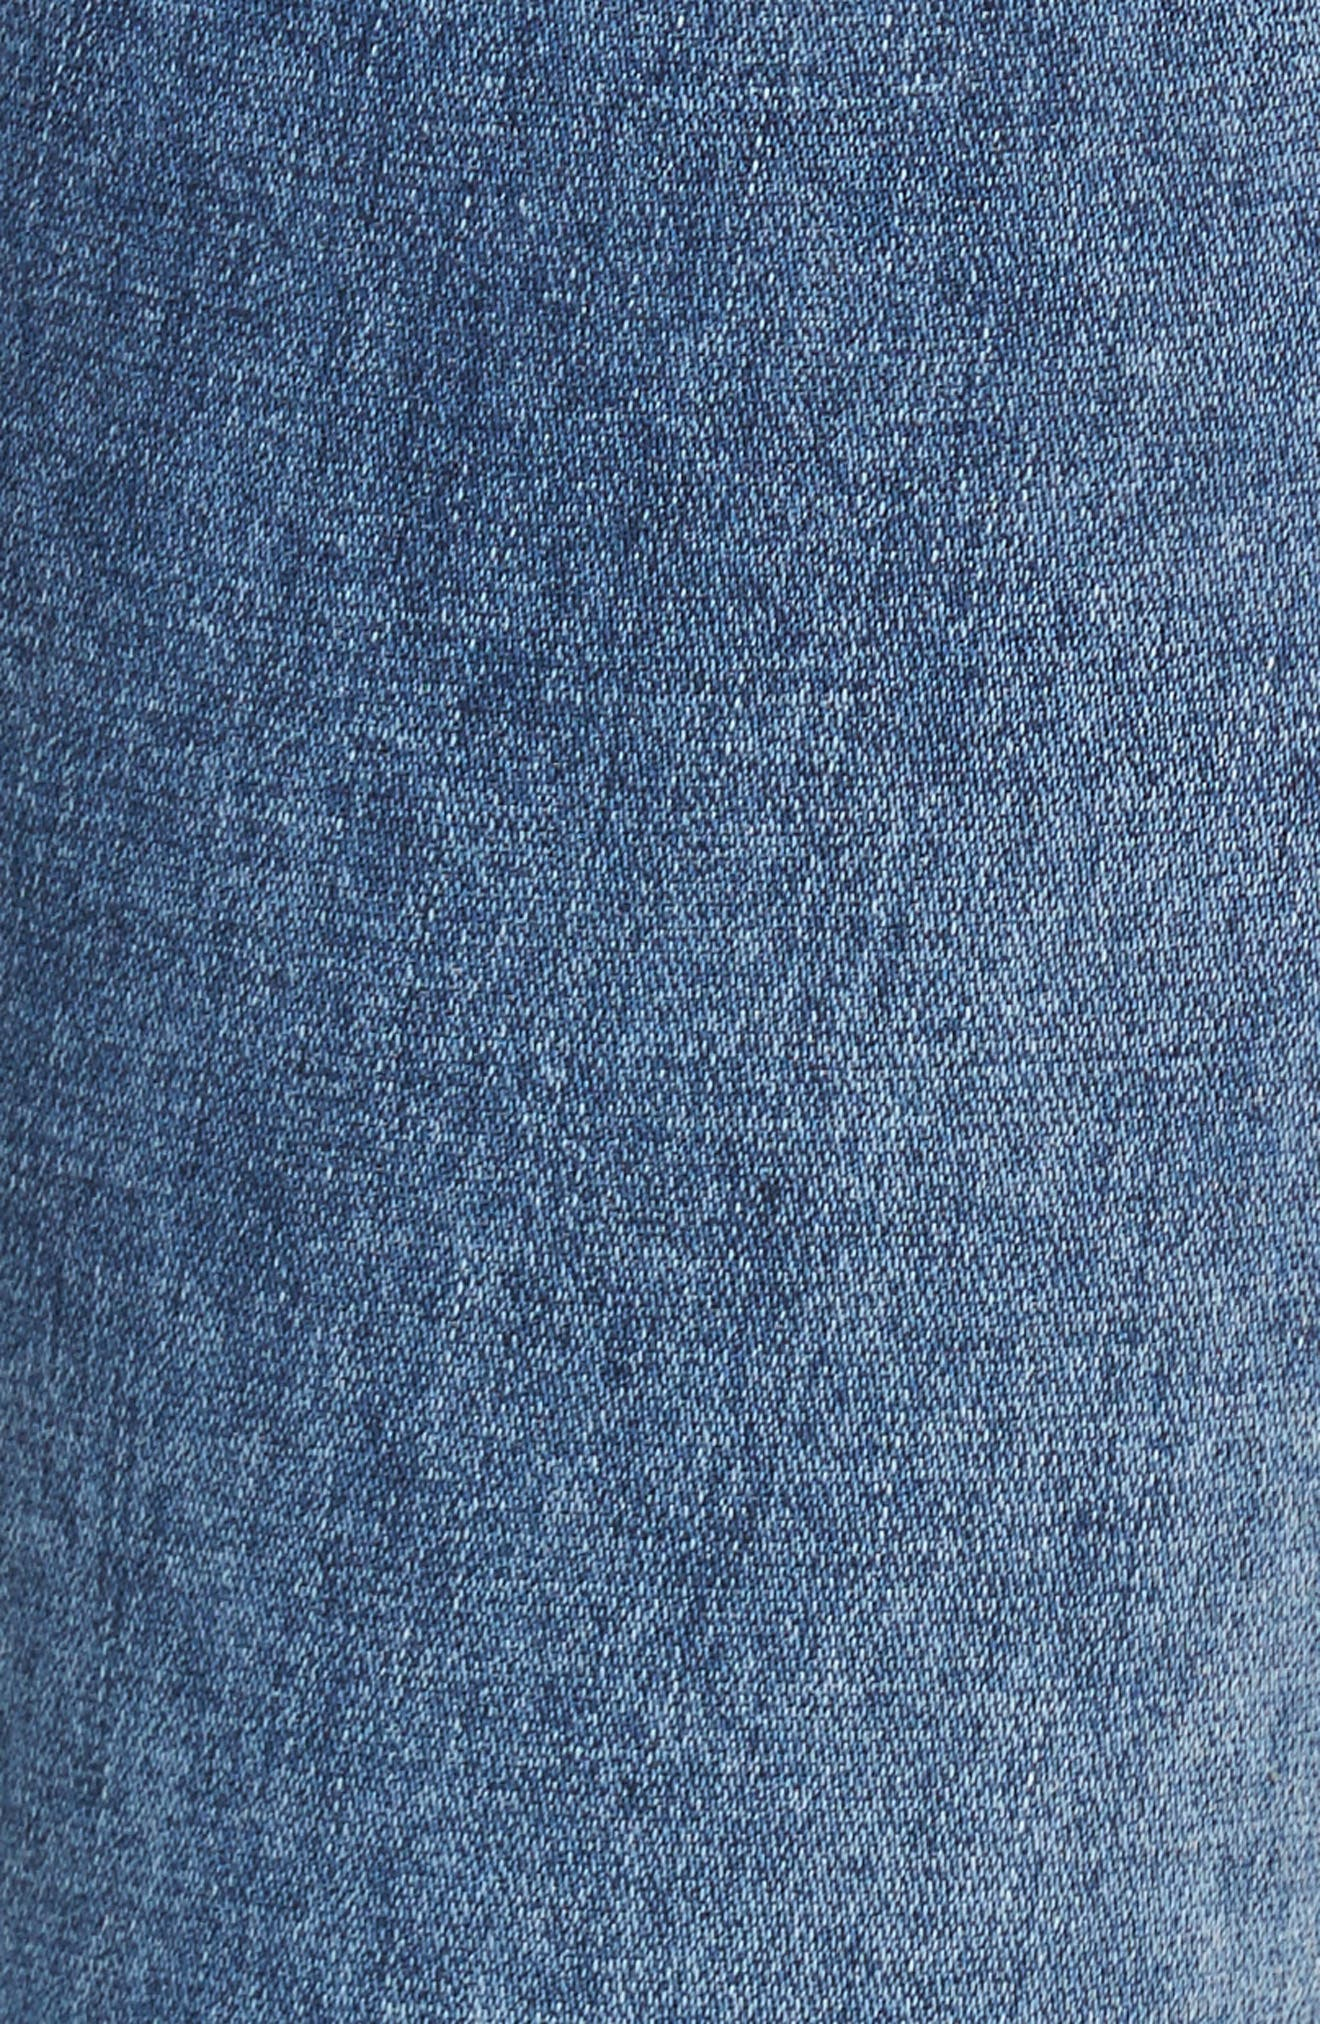 Alternate Image 5  - 7 For All Mankind® Ripped High Waist Skinny Jeans (Light Lafayette)